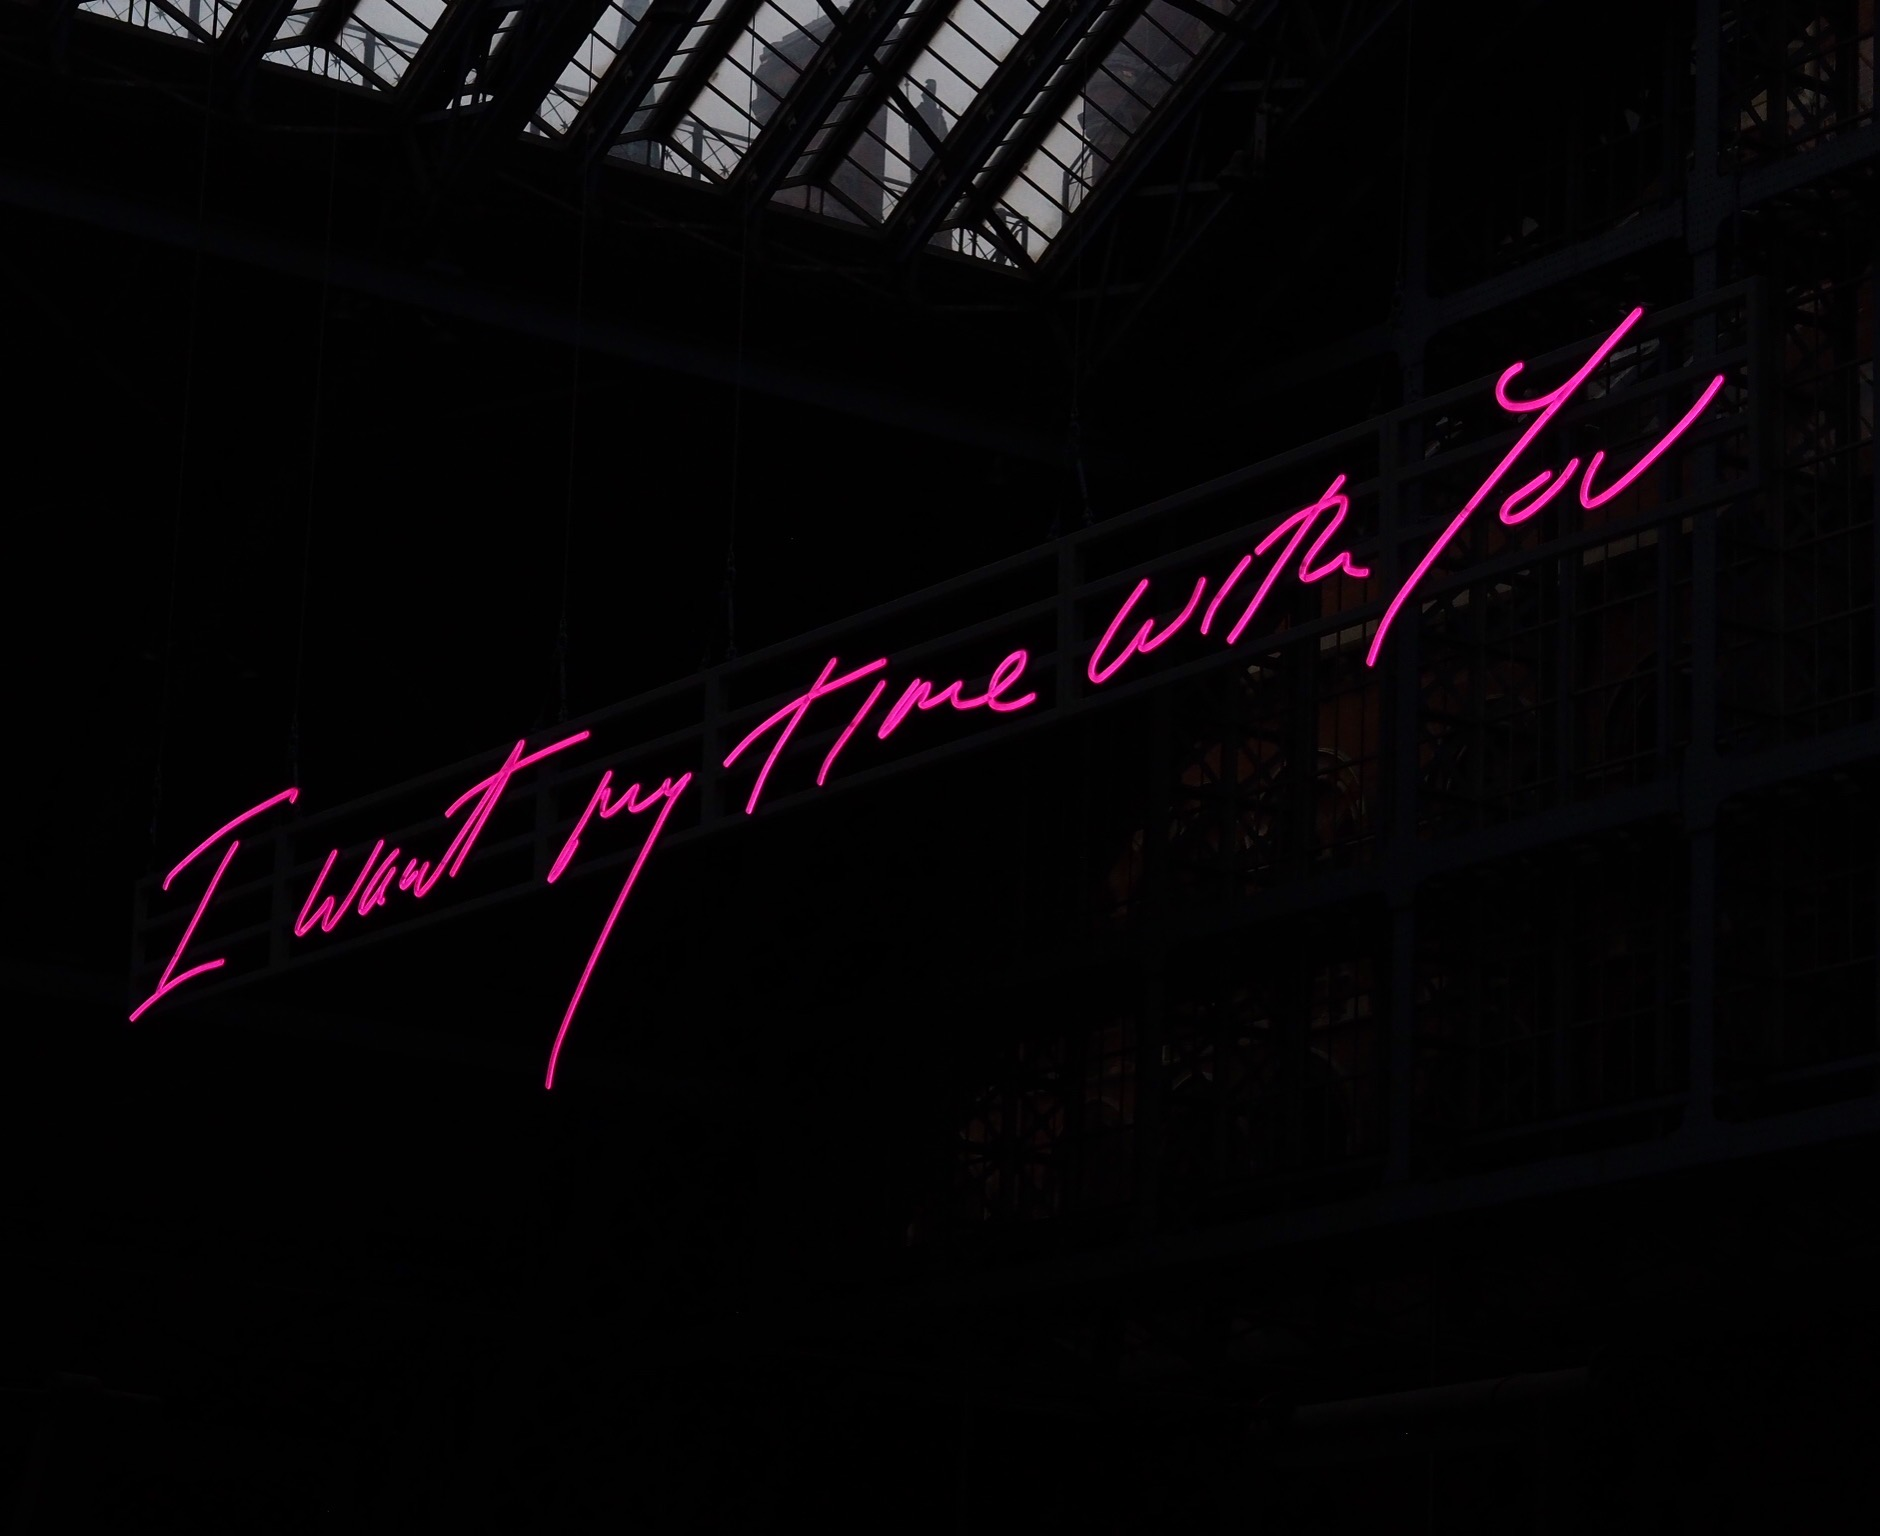 pink neon sign saying 'I want my time with you'